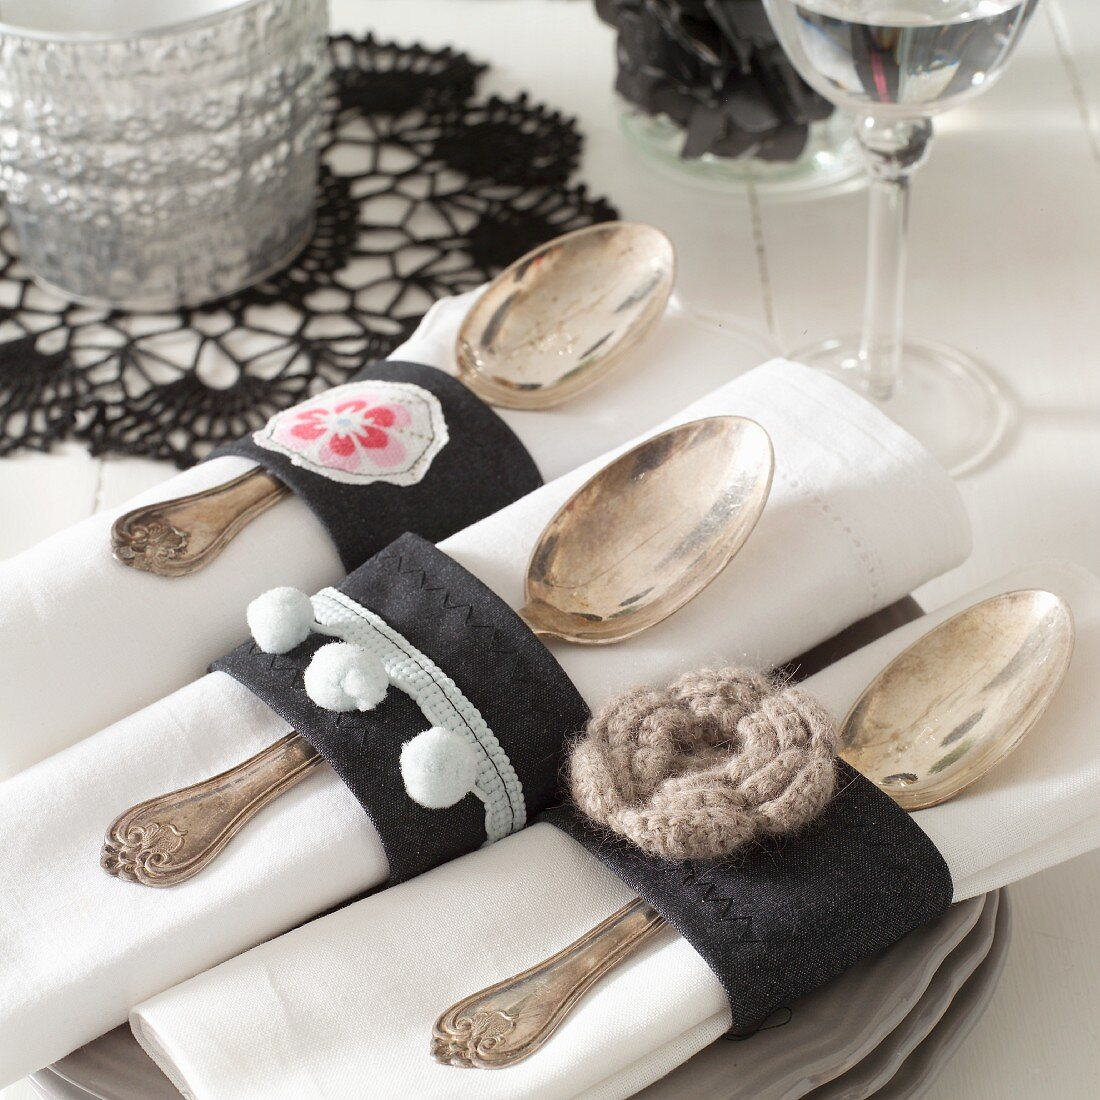 Hand Sewn Napkin Rings Made From Black Buy Image 11339325 Living4media